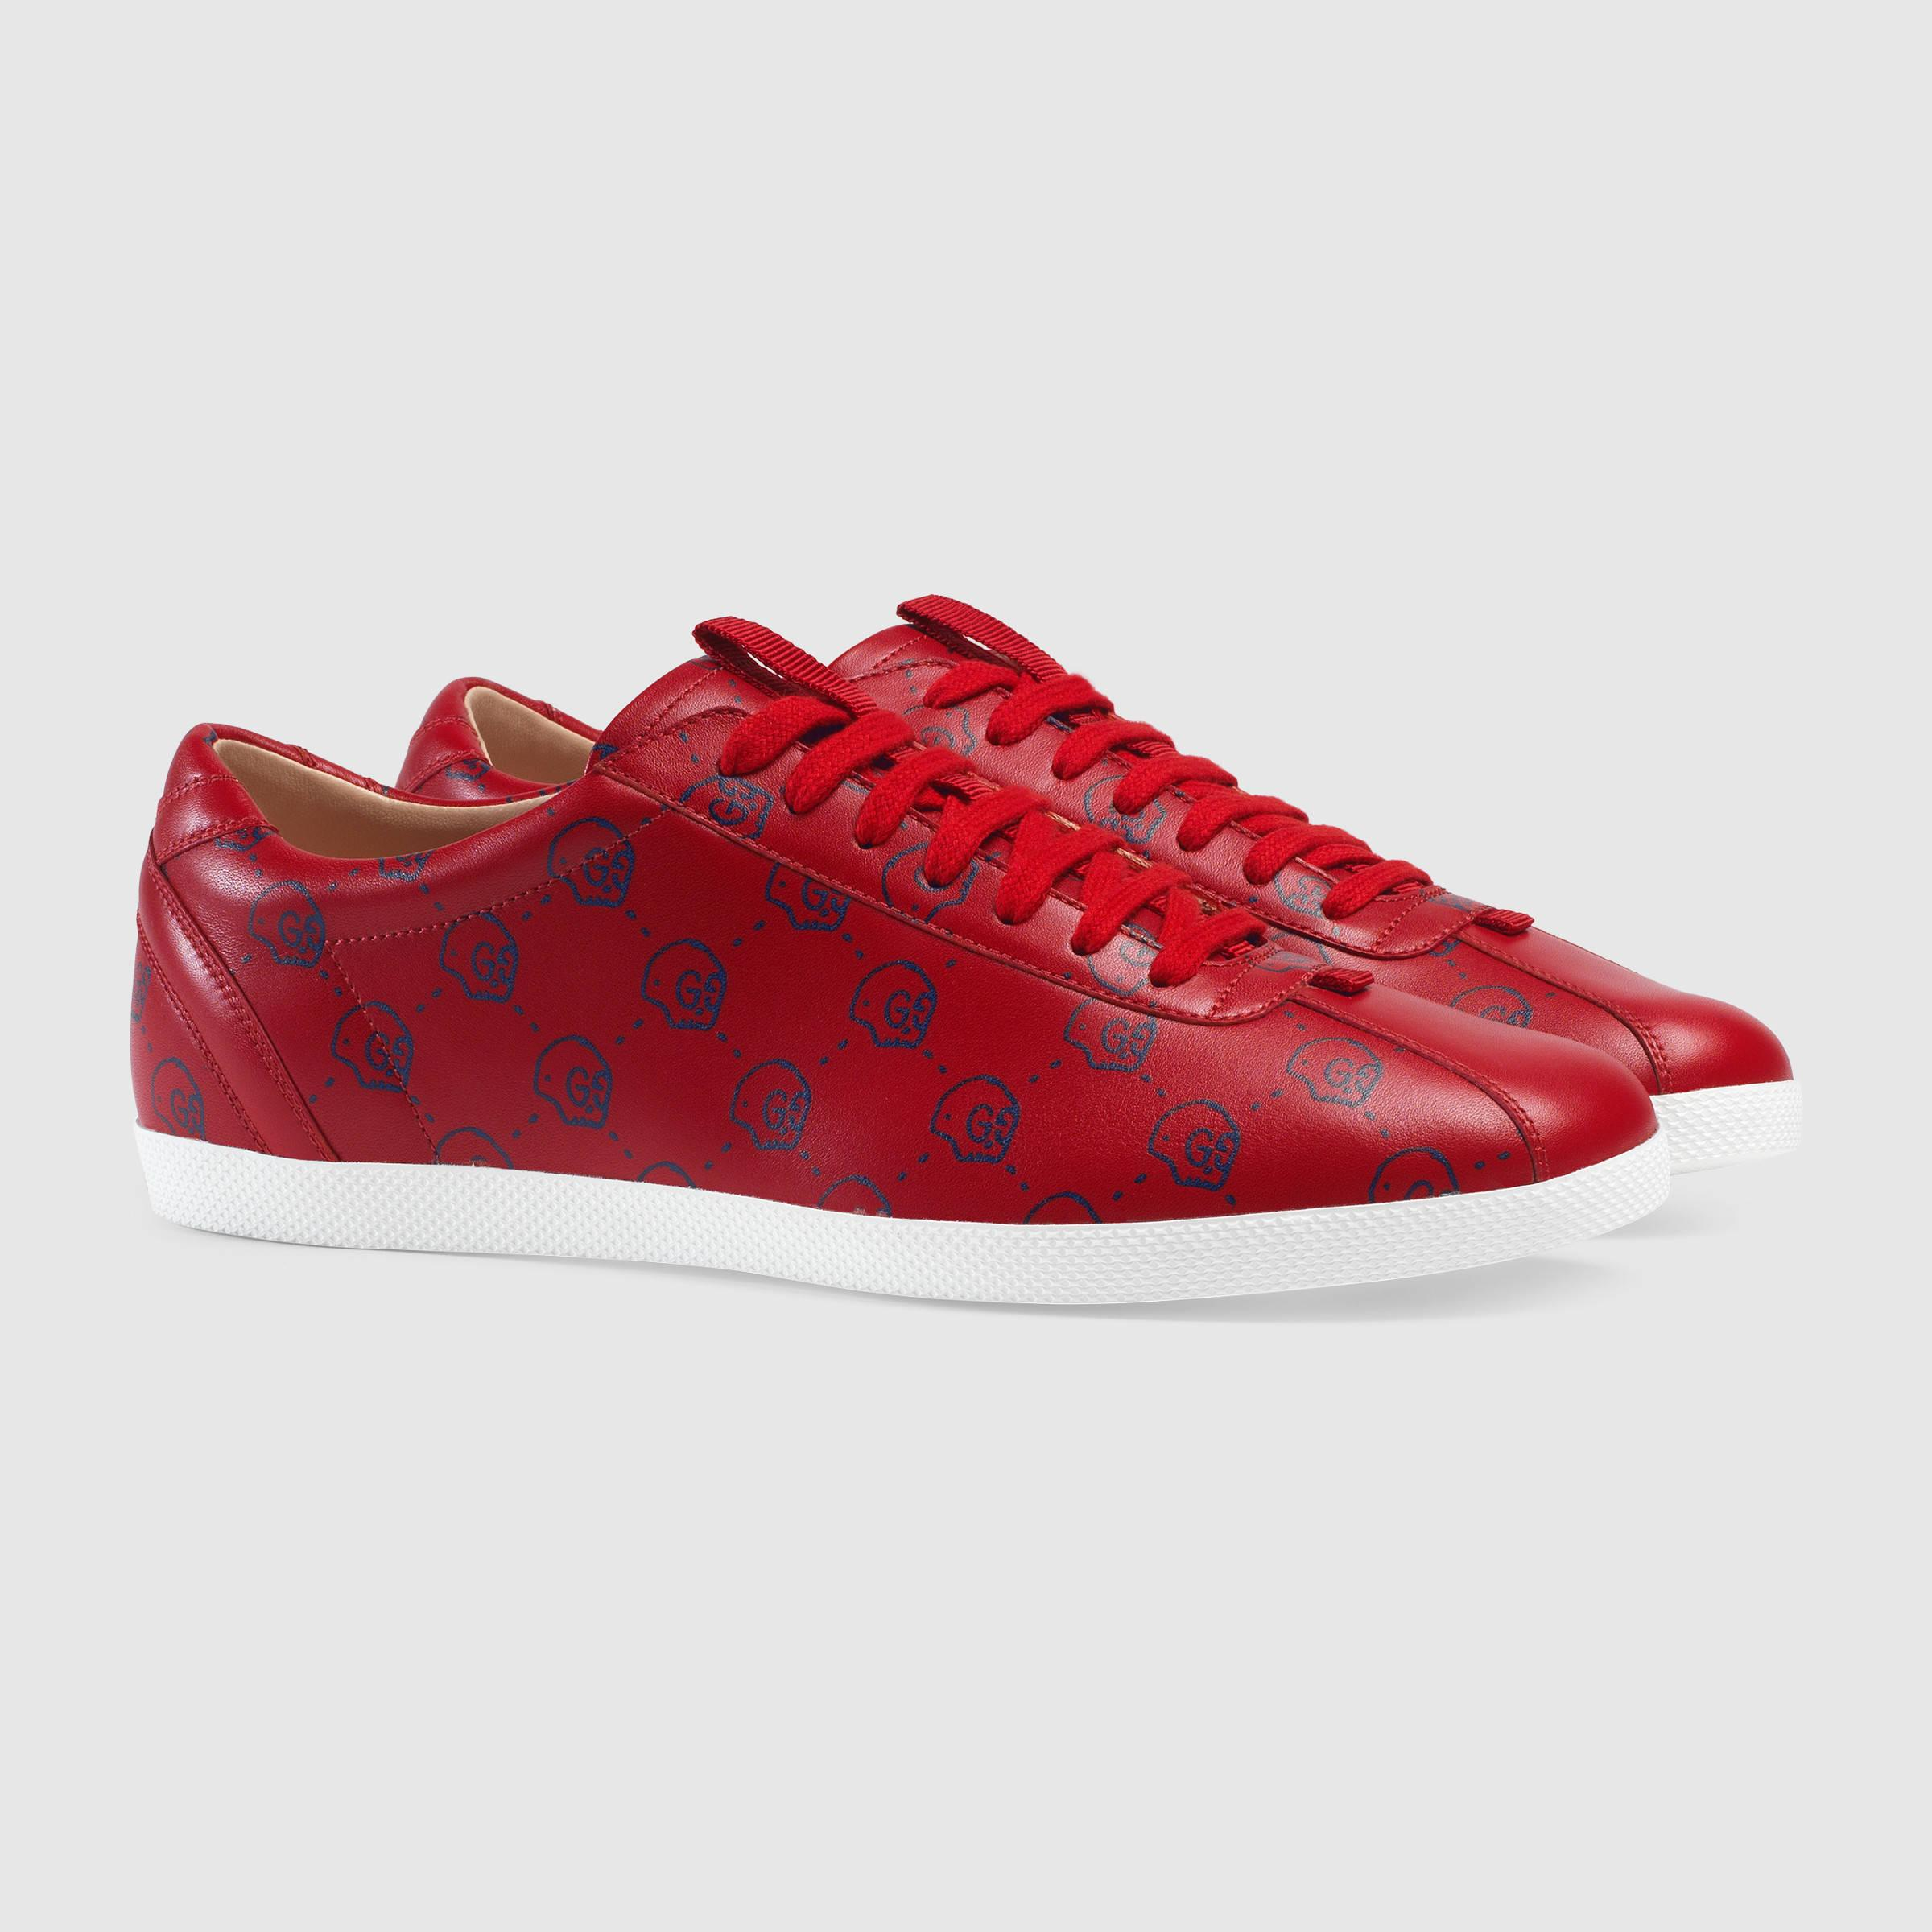 6589dbed87f Lyst - Gucci Ghost Sneaker for Men